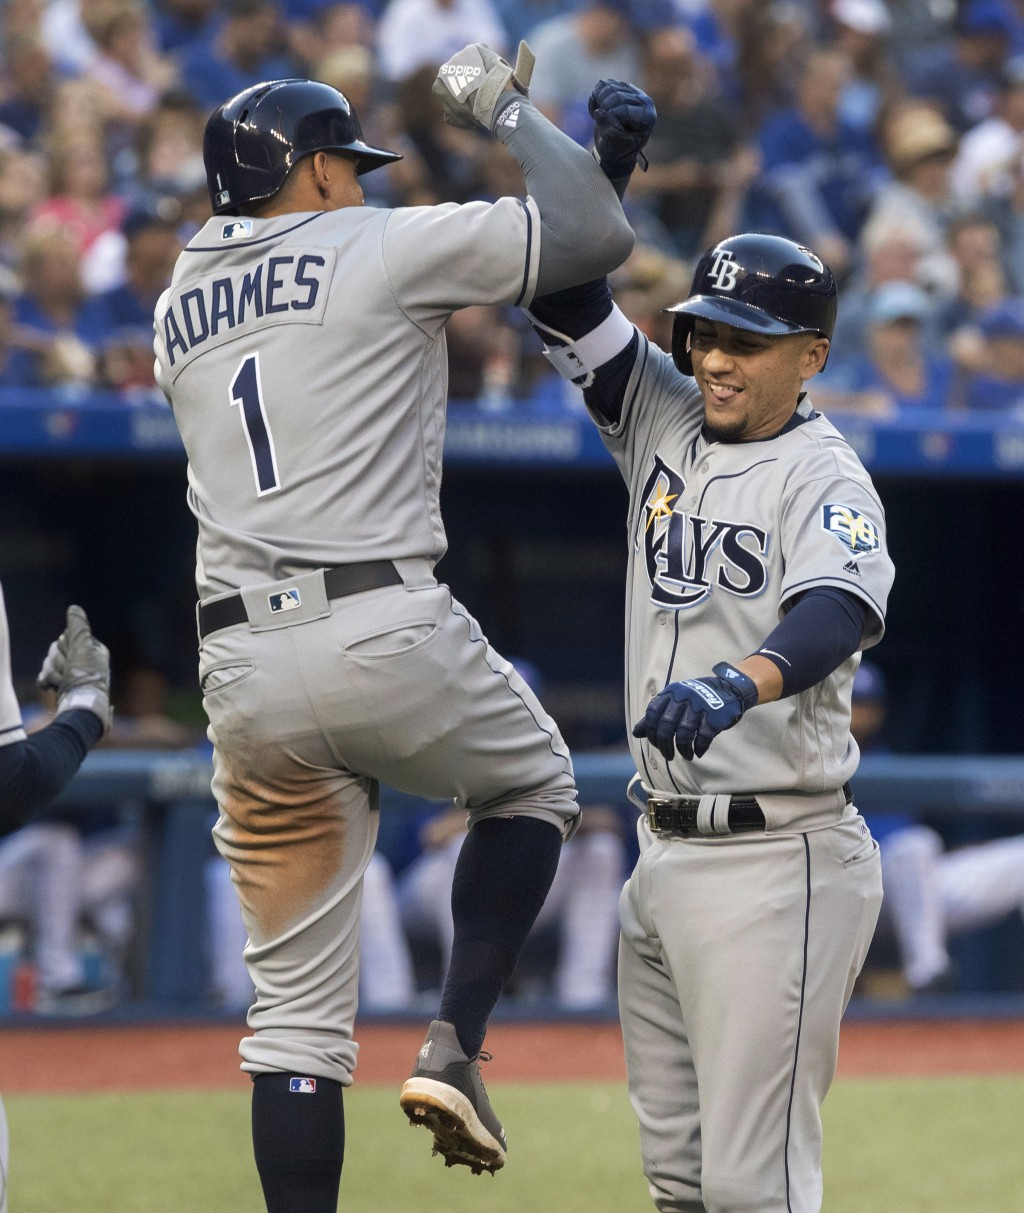 Tampa Bay Rays' Michael Perez high-fives with Willy Adames after Perez hit a two-run home run in the third inning inning of a baseball game Friday, Au